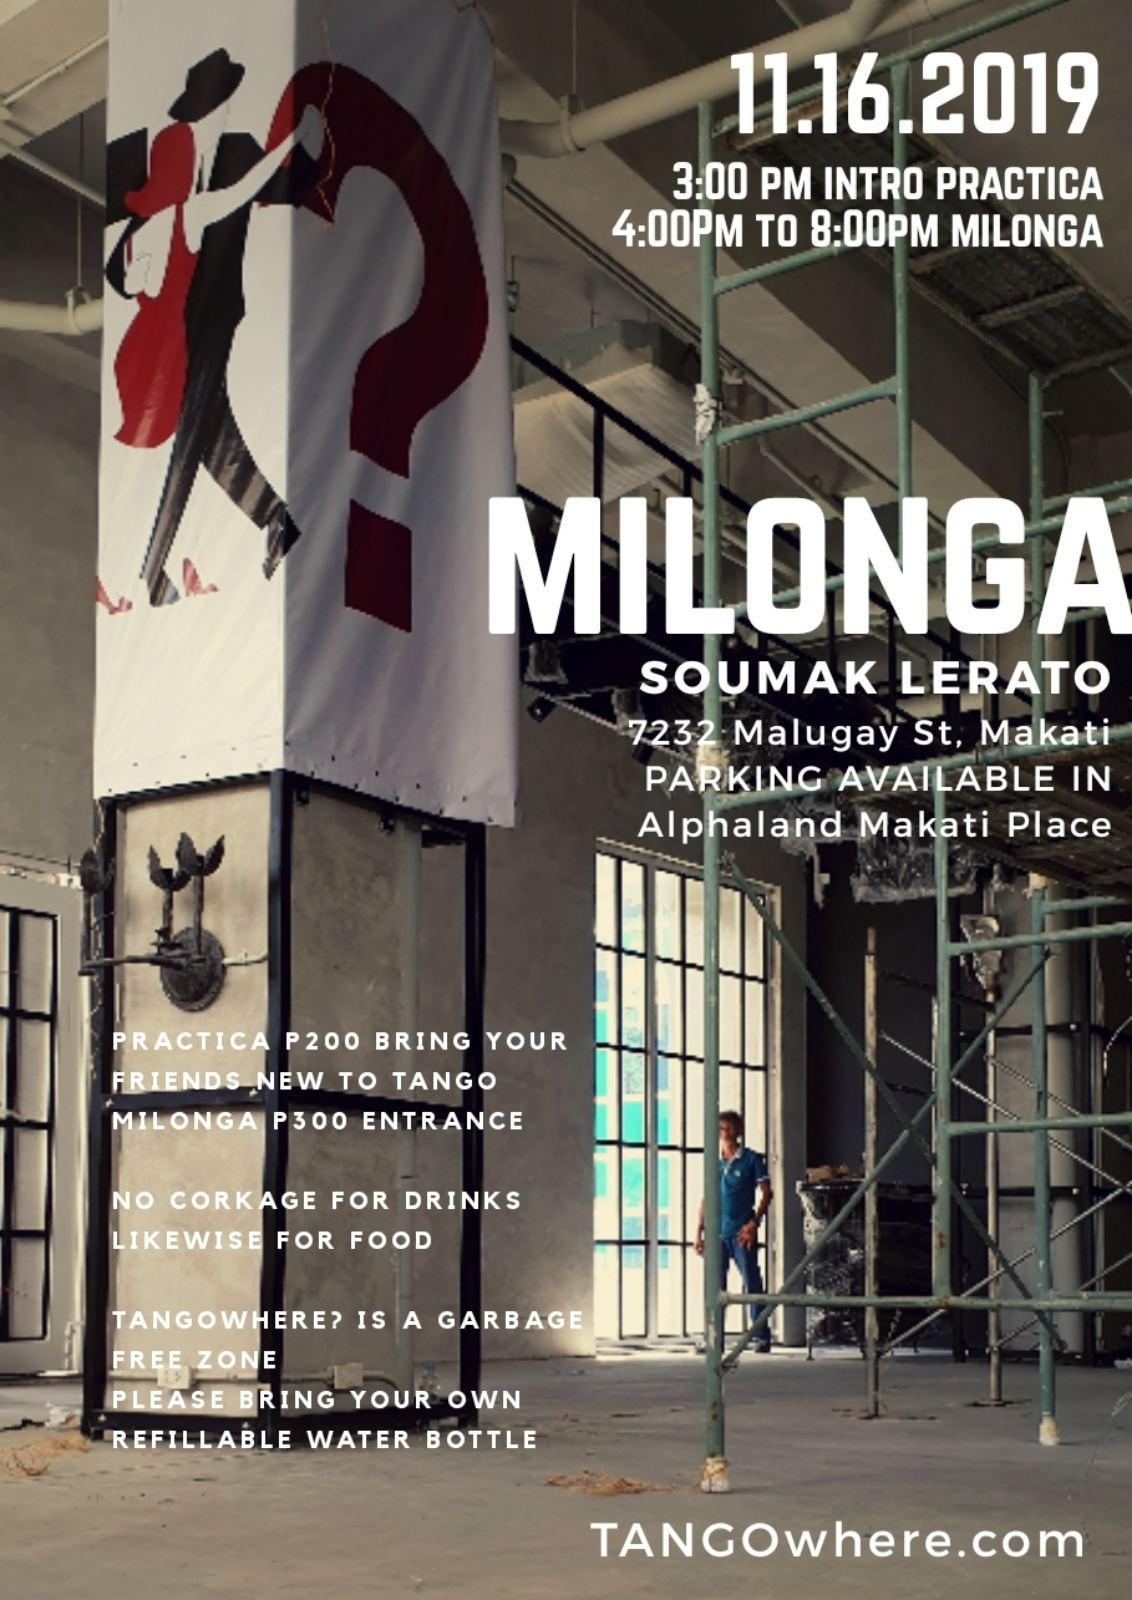 Nov 16, 2019. Pop-up Milonga at Soumak Lerato, Makati City. 7232 Malugay St, Makati City, Php 300.